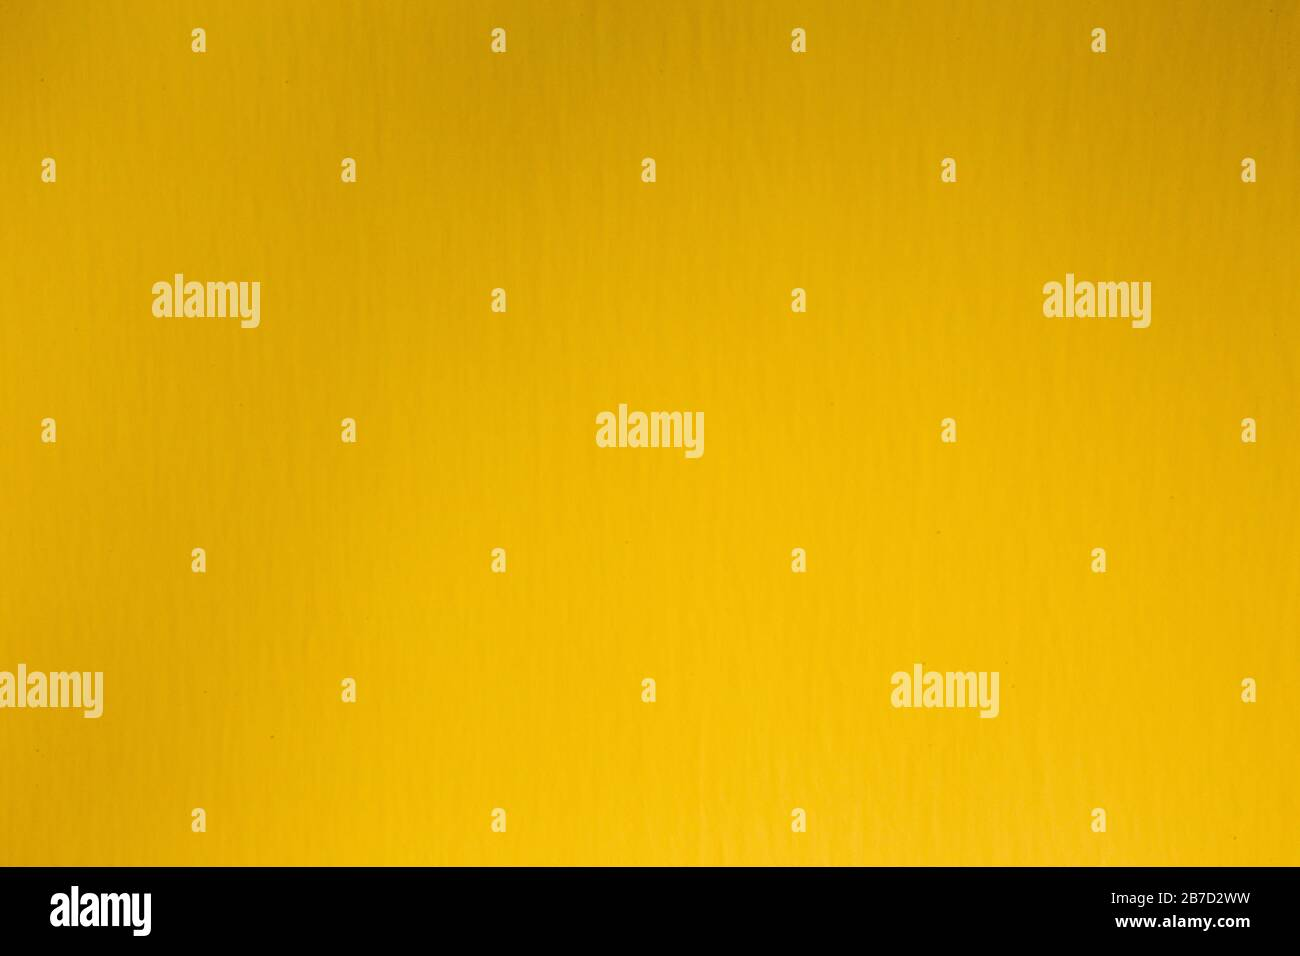 bright yellow orange gold plain clean blank background wallpaper color 2B7D2WW